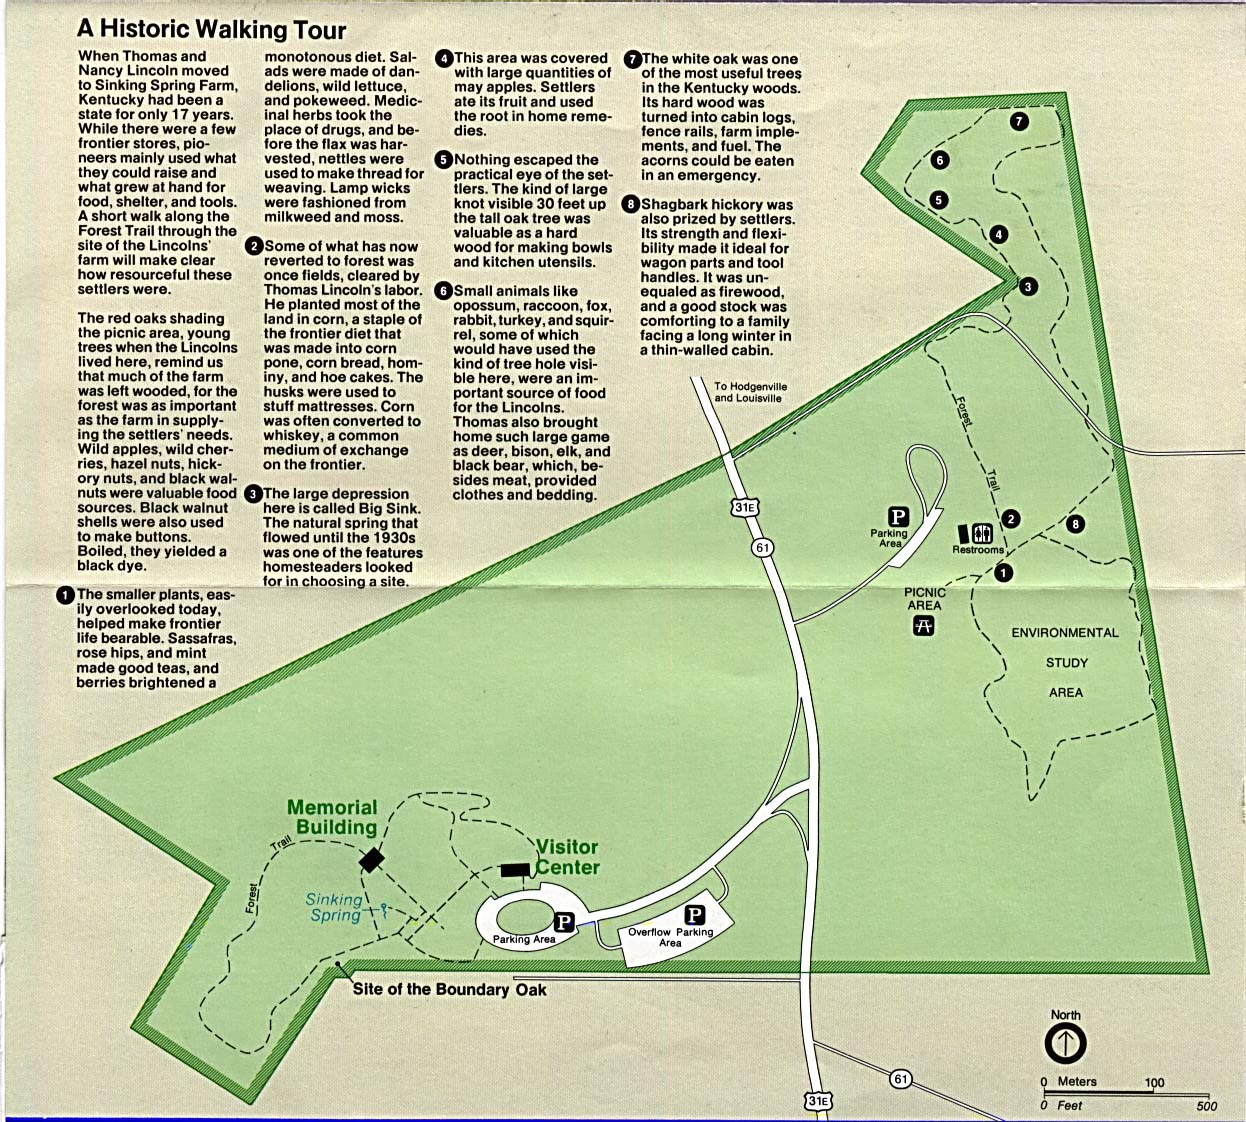 Walking Tour Map of Abraham Lincoln Birthplace National Historic Site, Kentucky, United States